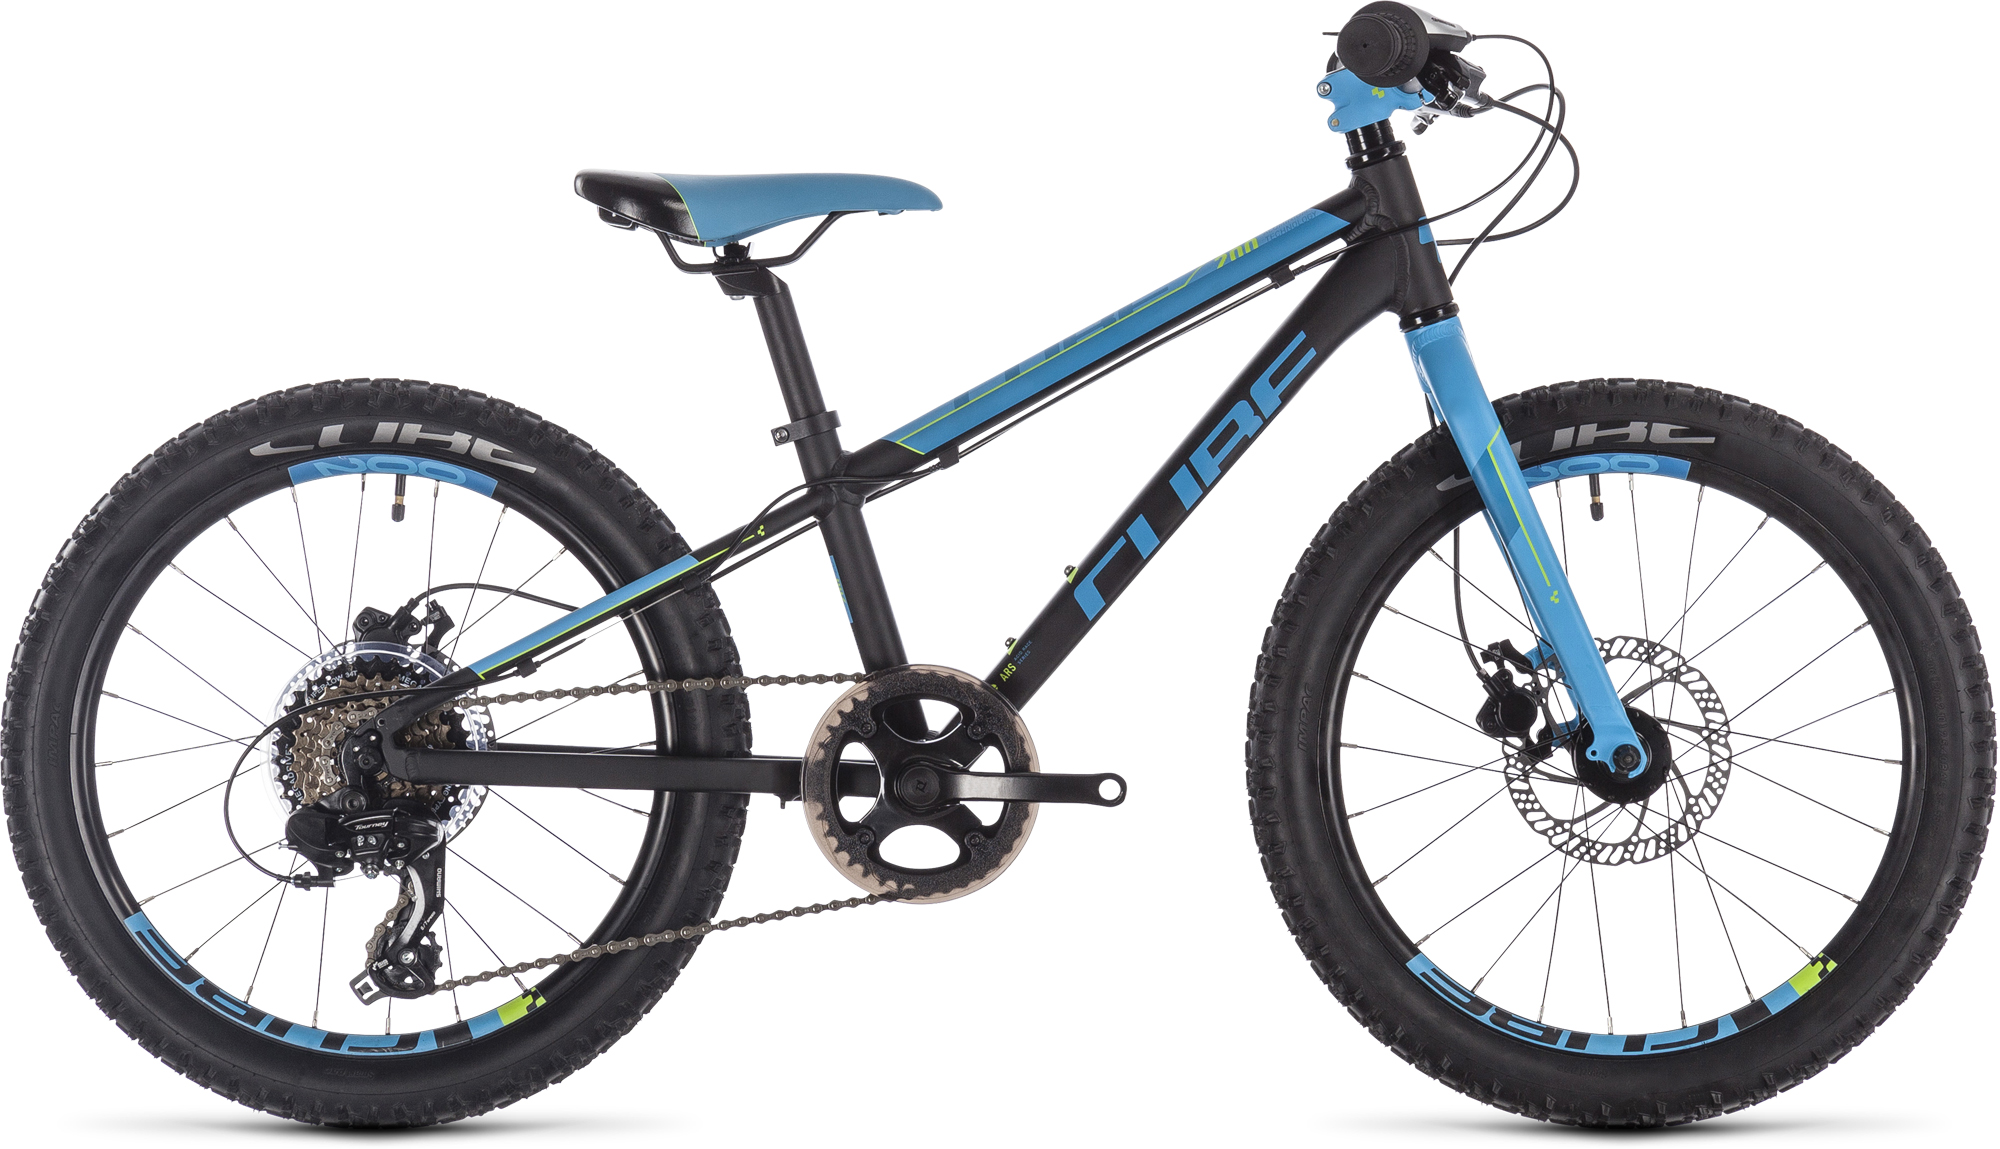 CUBE Велосипед детский CUBE ACID 200 Disc велосипед specialized roubaix sl4 comp disc 2015